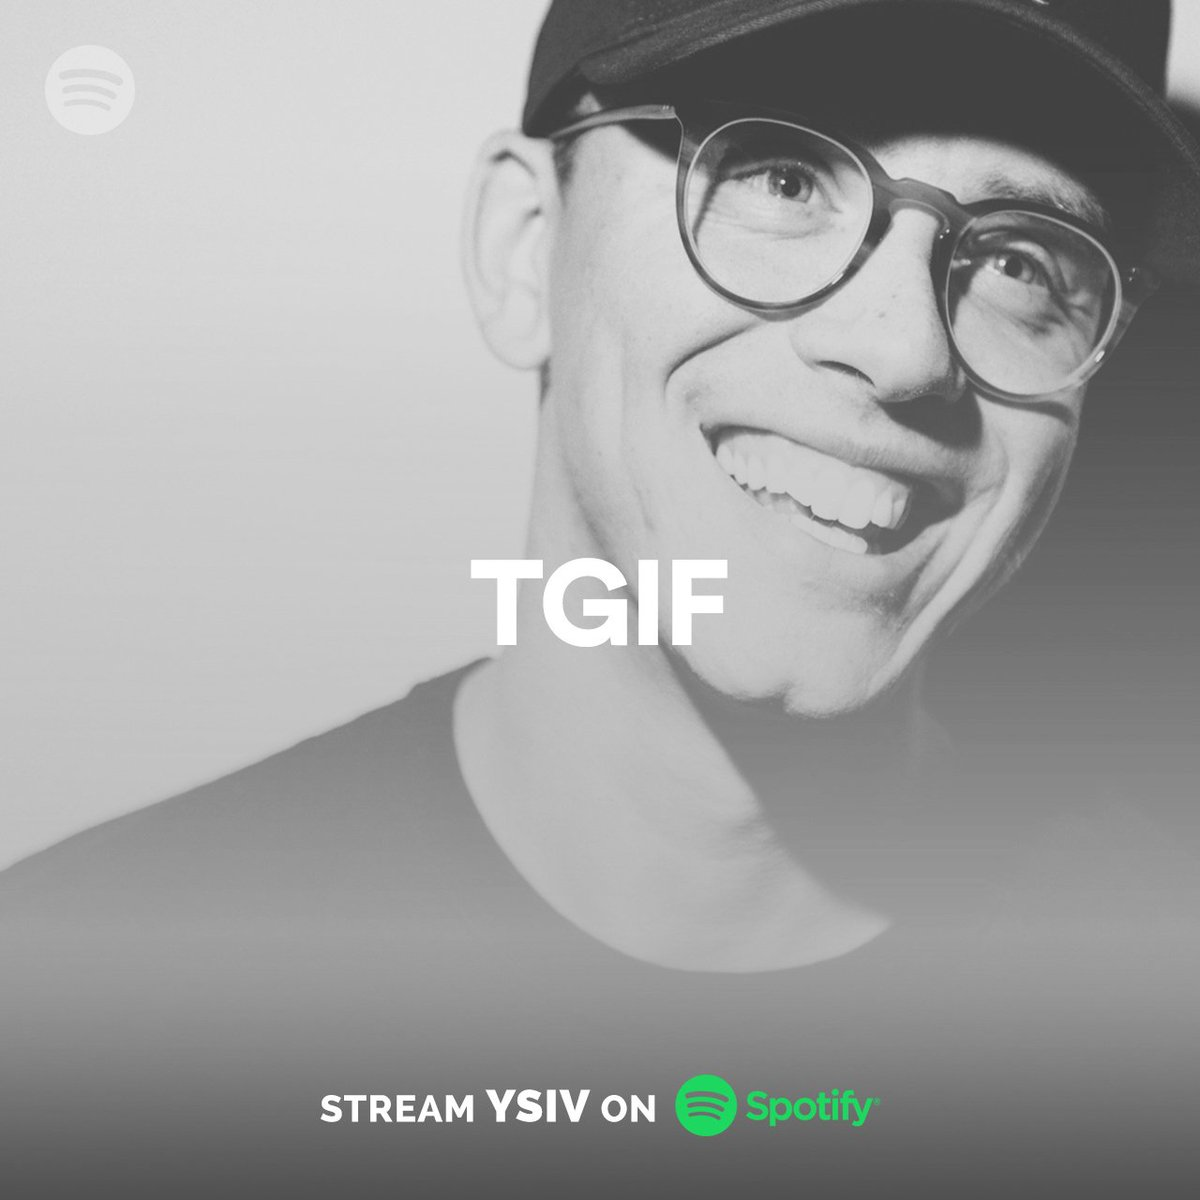 Took over the 'TGIF' playlist this week for @Spotify! https://t.co/z42v3CWvgE